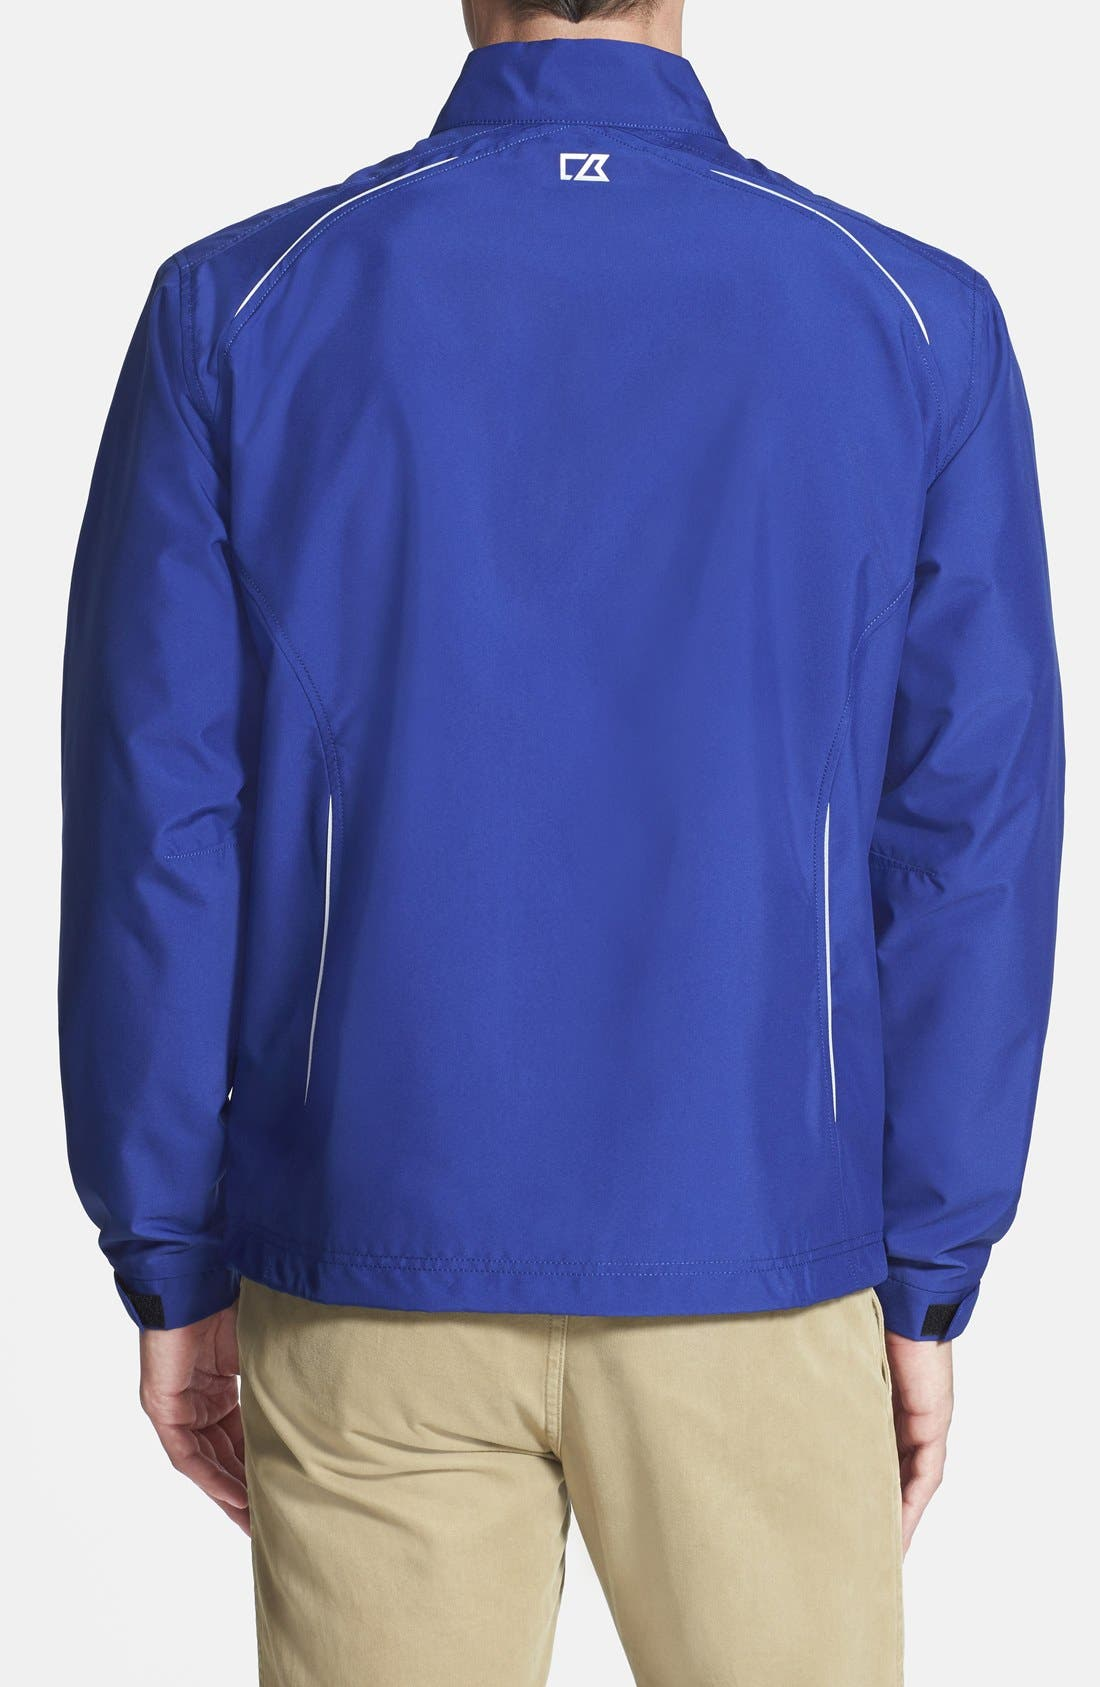 Indianapolis Colts - Beacon WeatherTec Wind & Water Resistant Jacket,                             Alternate thumbnail 2, color,                             Tour Blue